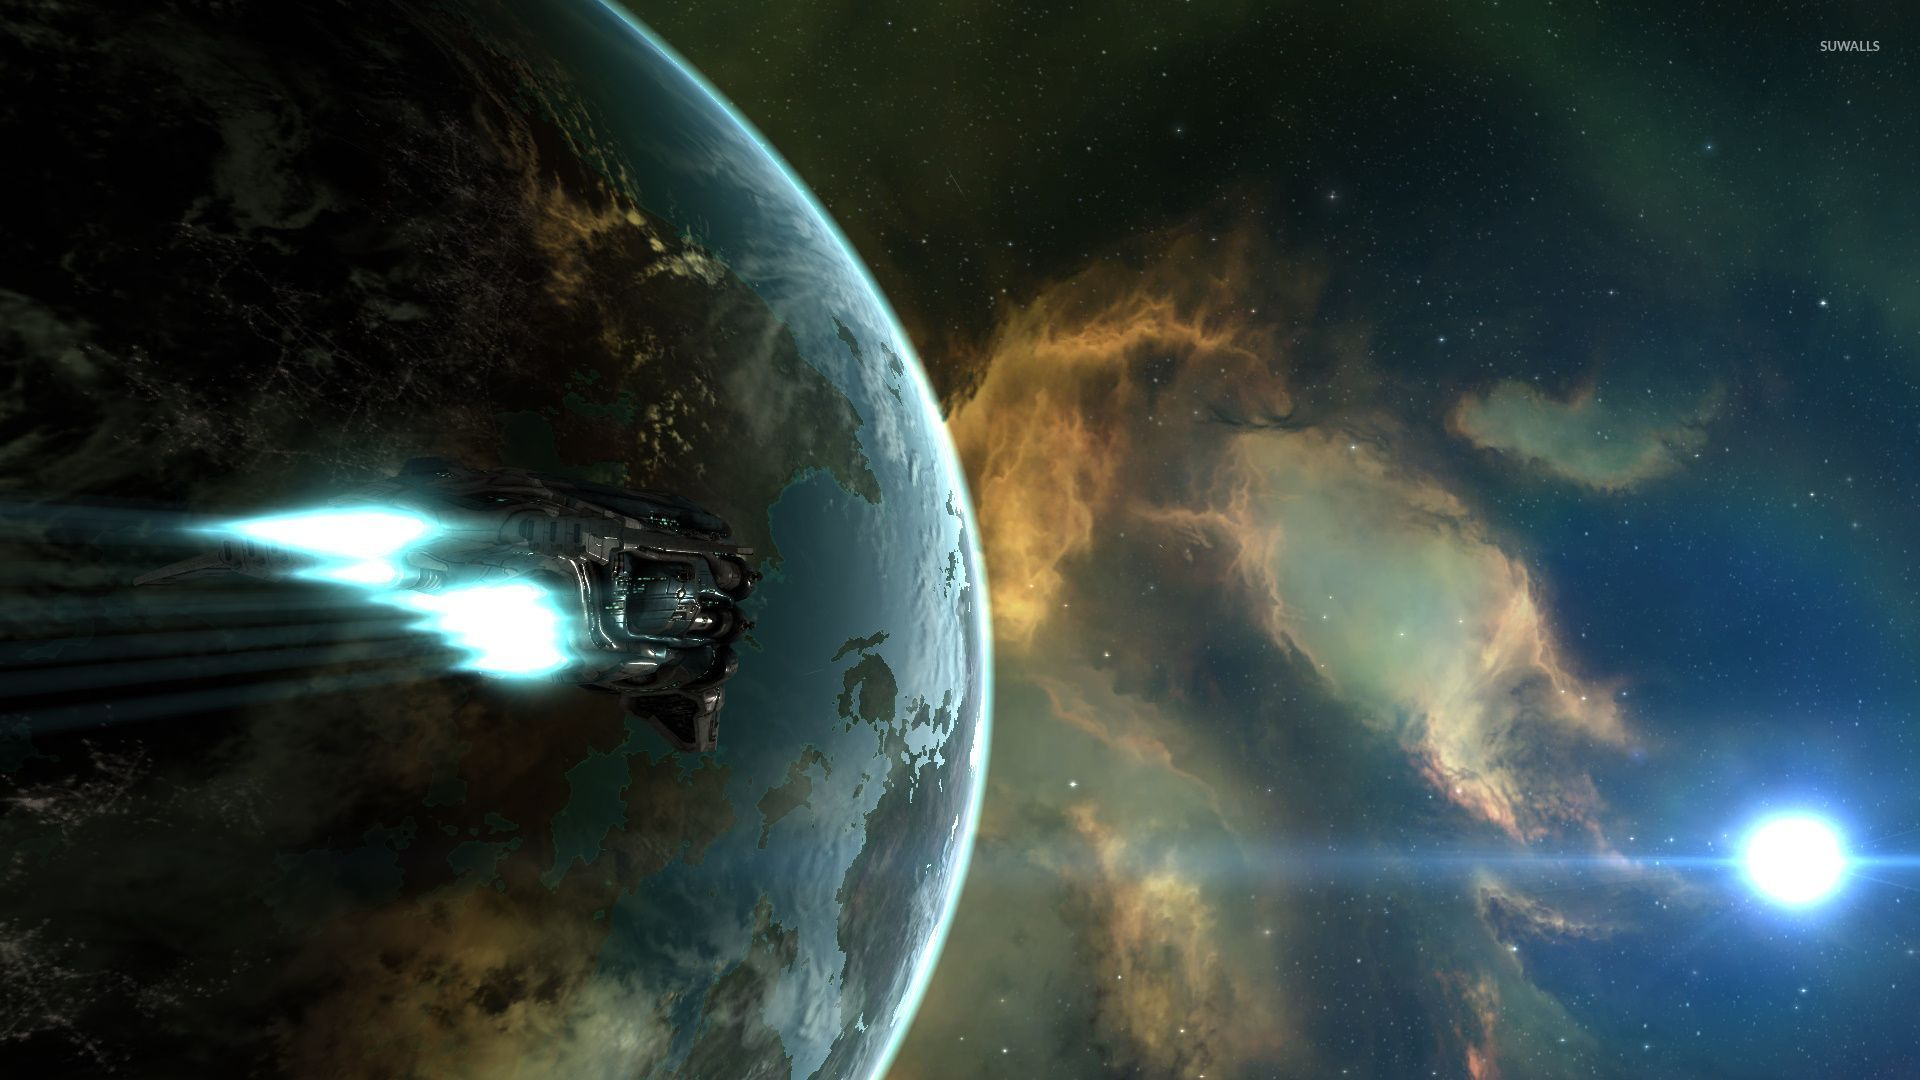 Spaceship Flying To The Nebula 36761 1920×1080 Wallpaper